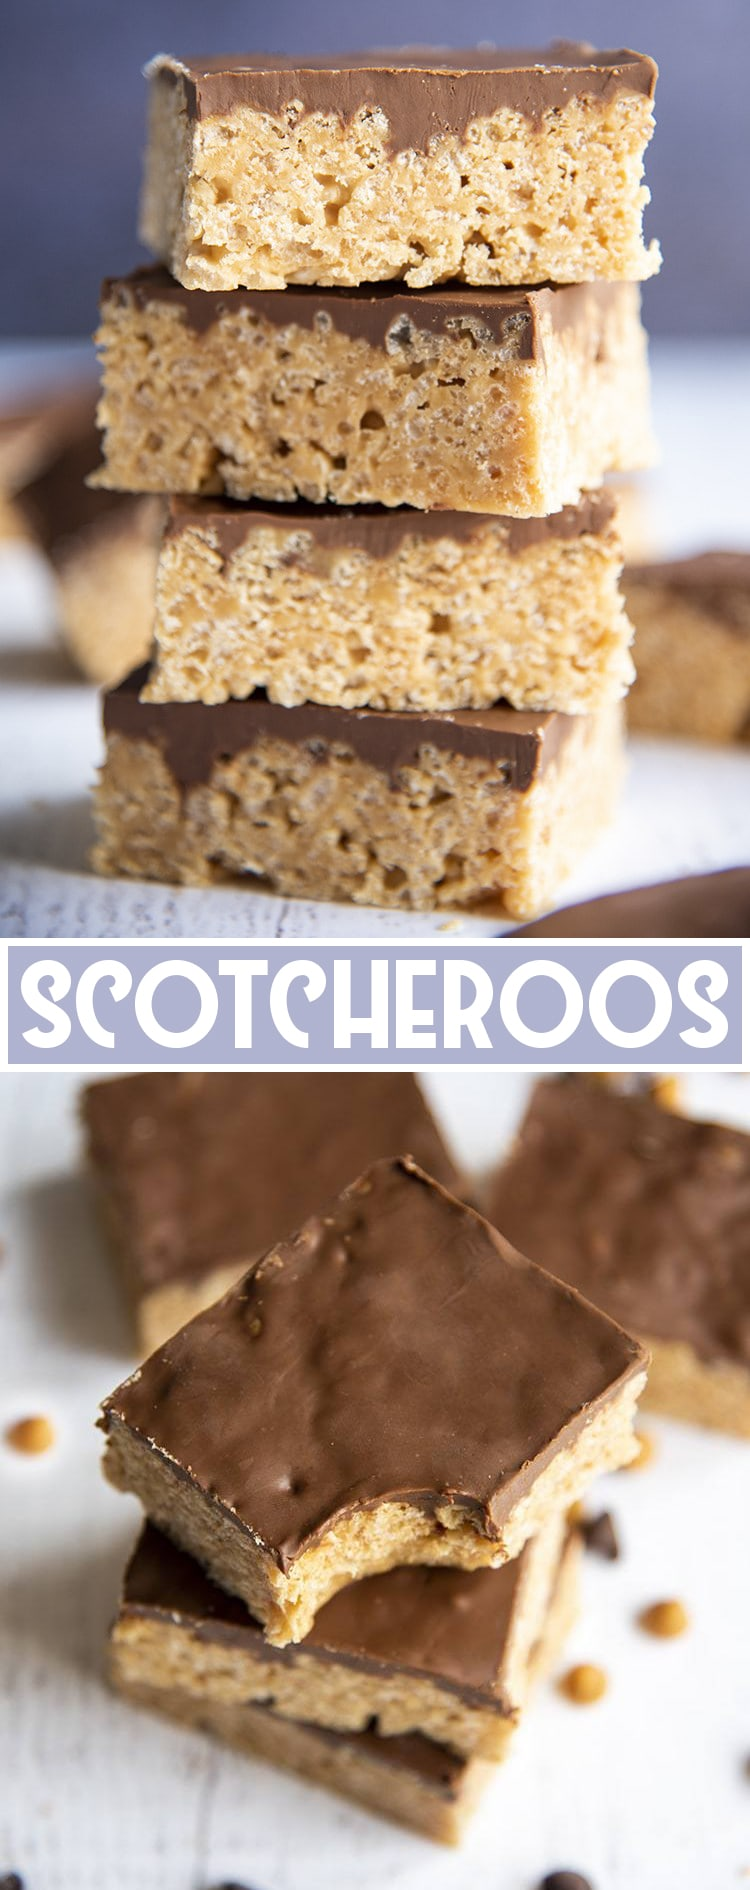 Scotcheroos are the perfect gooey and chewy no bake treat bar! With a peanut butter rice crispy treat topped with butterscotch and chocolate!